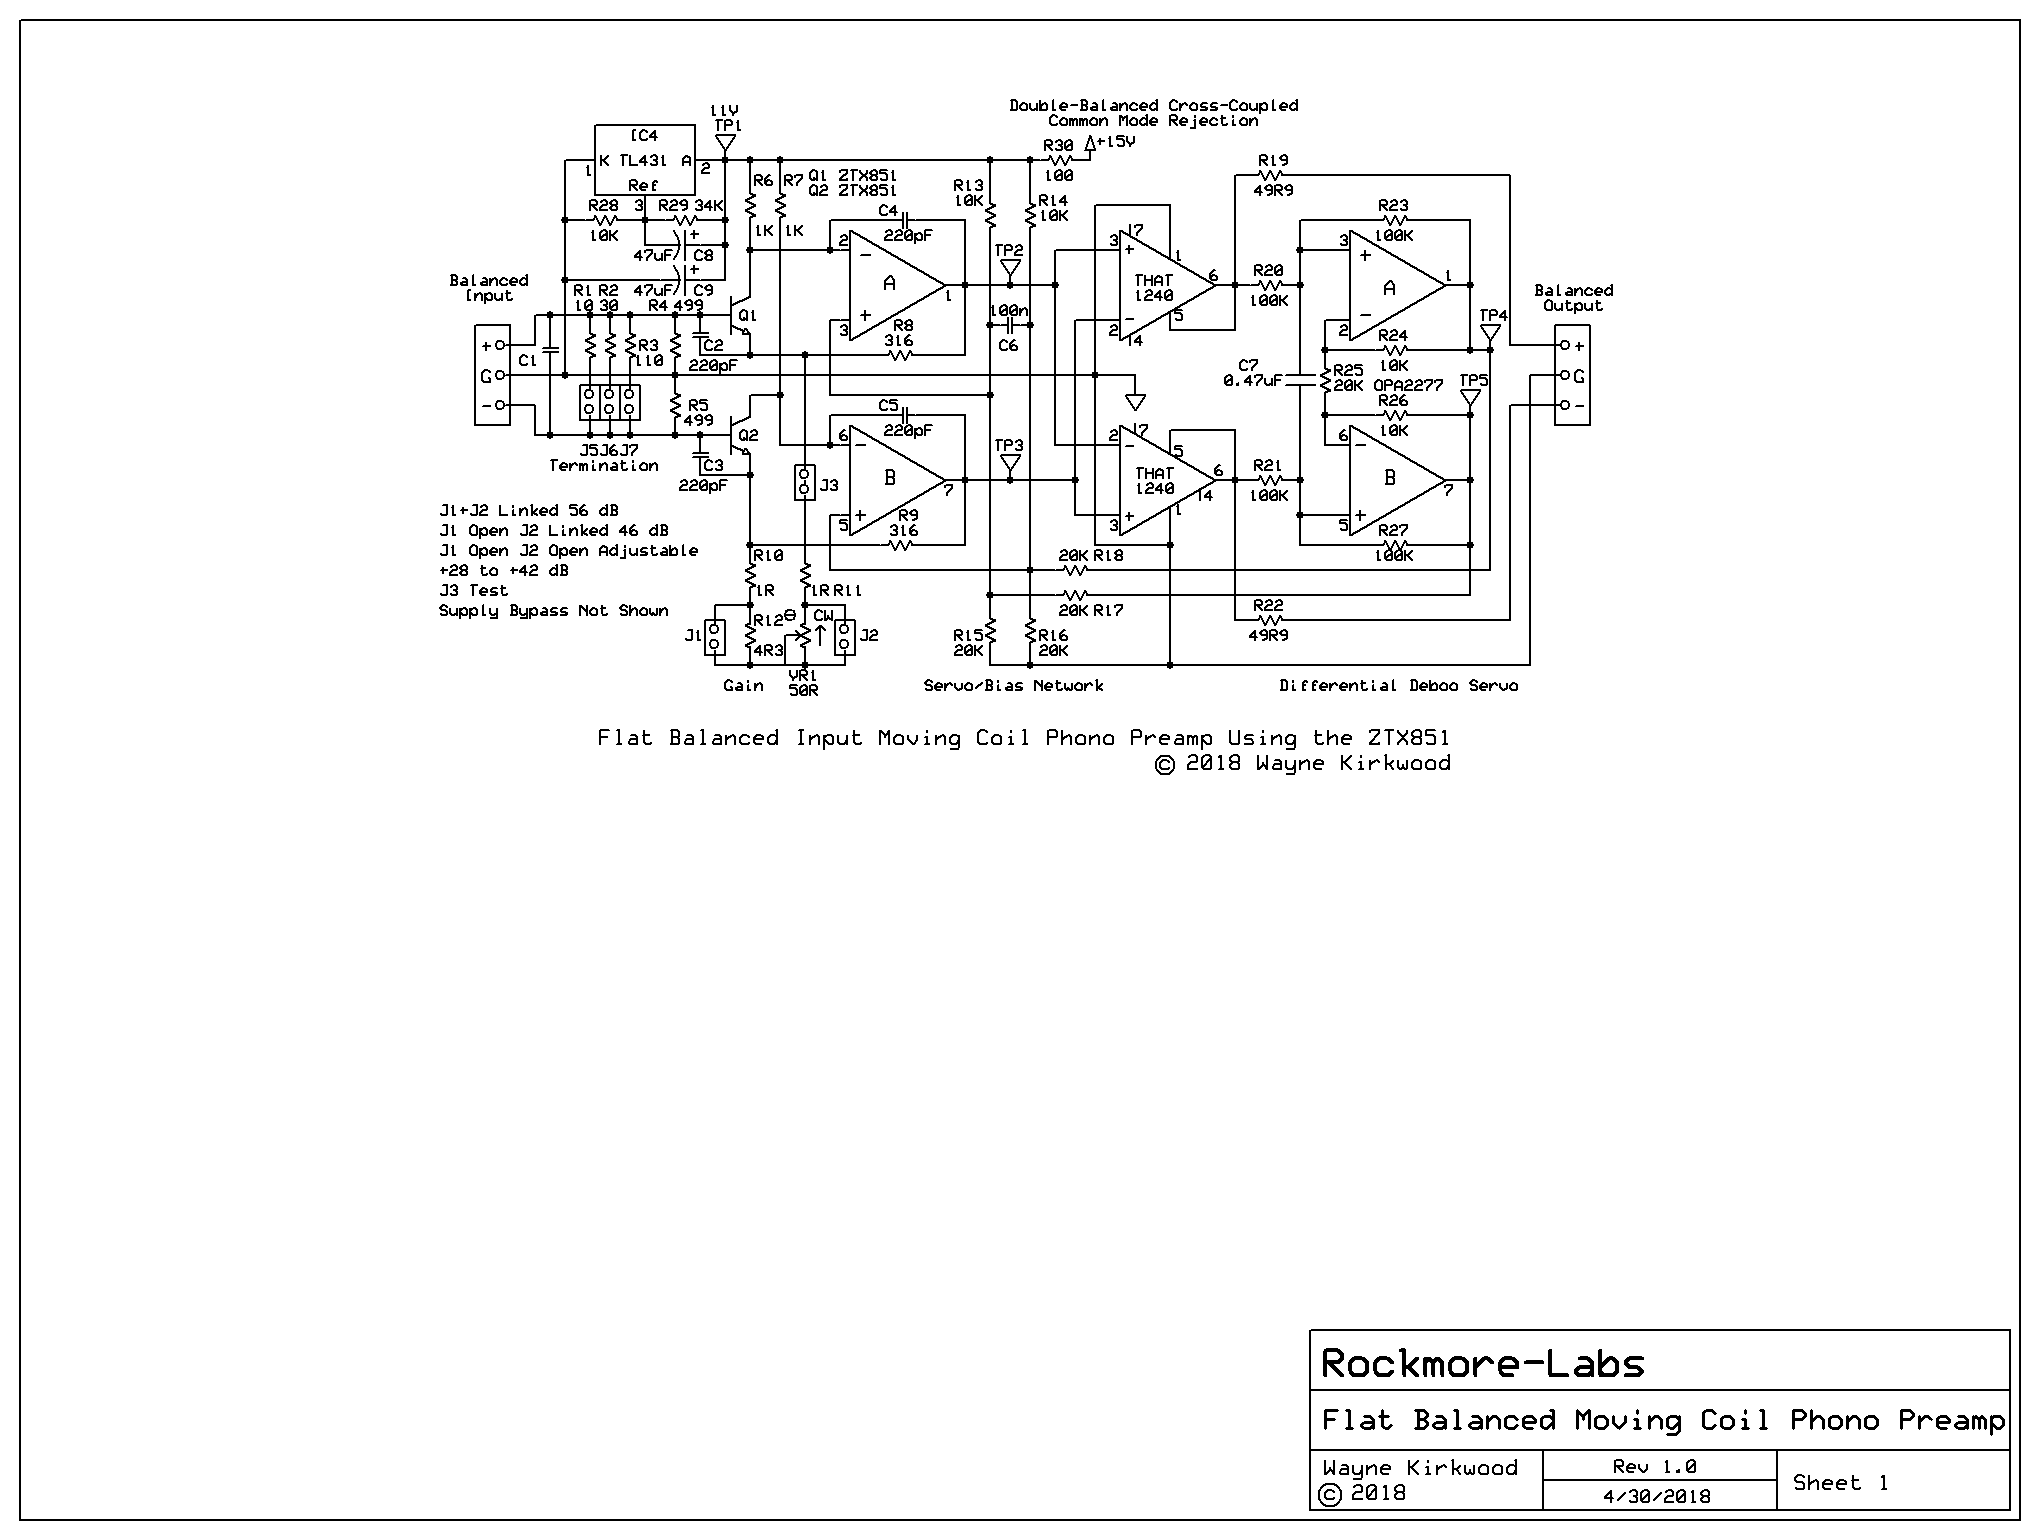 a low noise balanced input moving coil preamp using the ztx851 - page 17